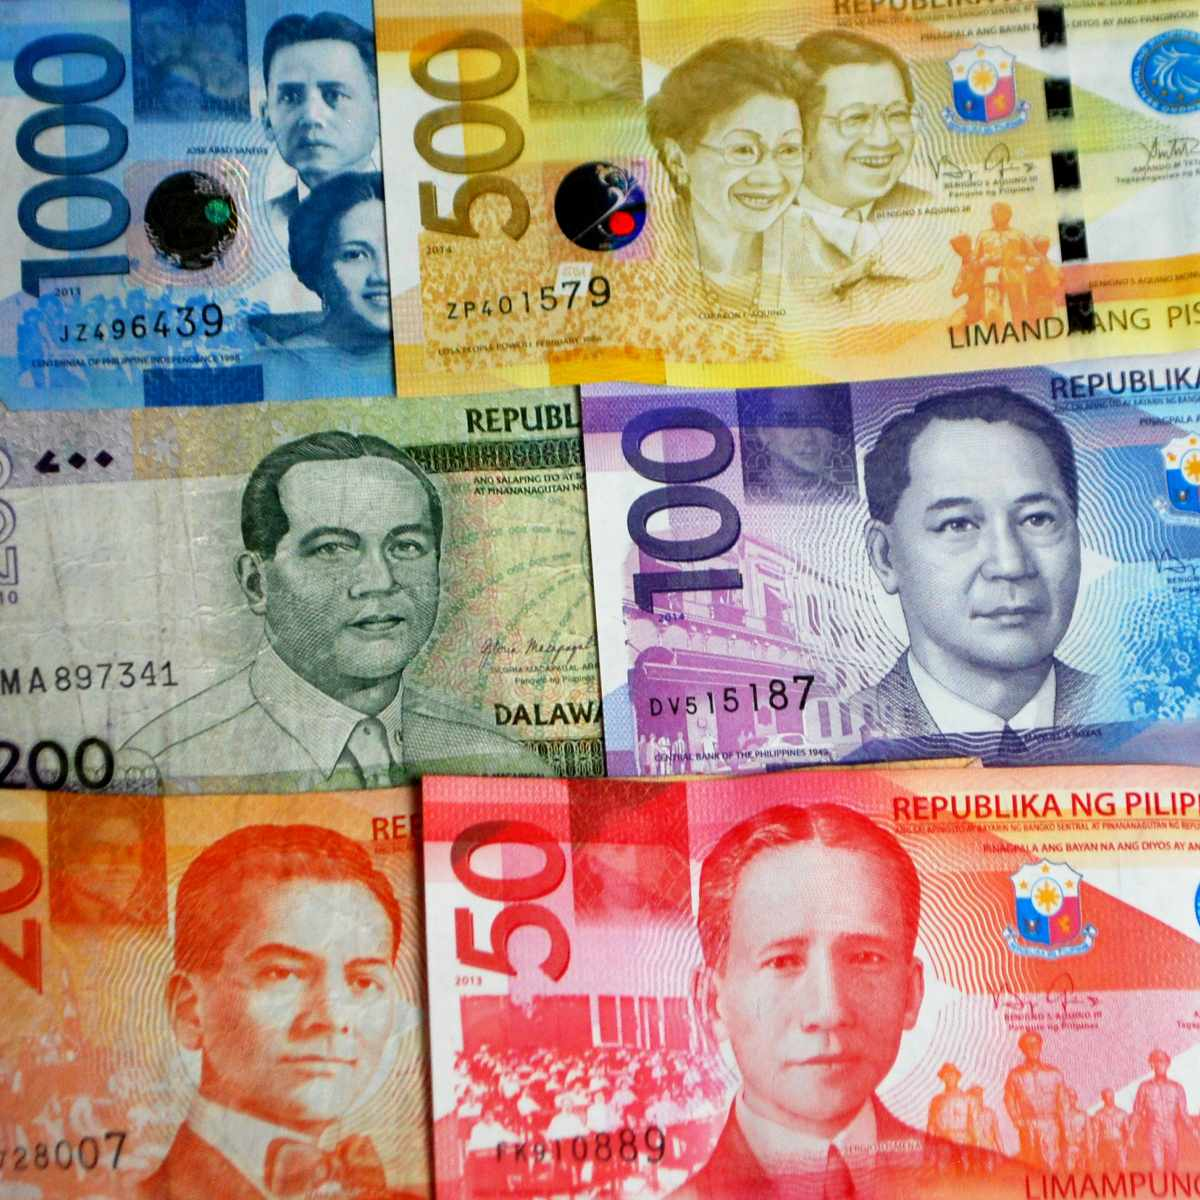 Paper money in the Philippines